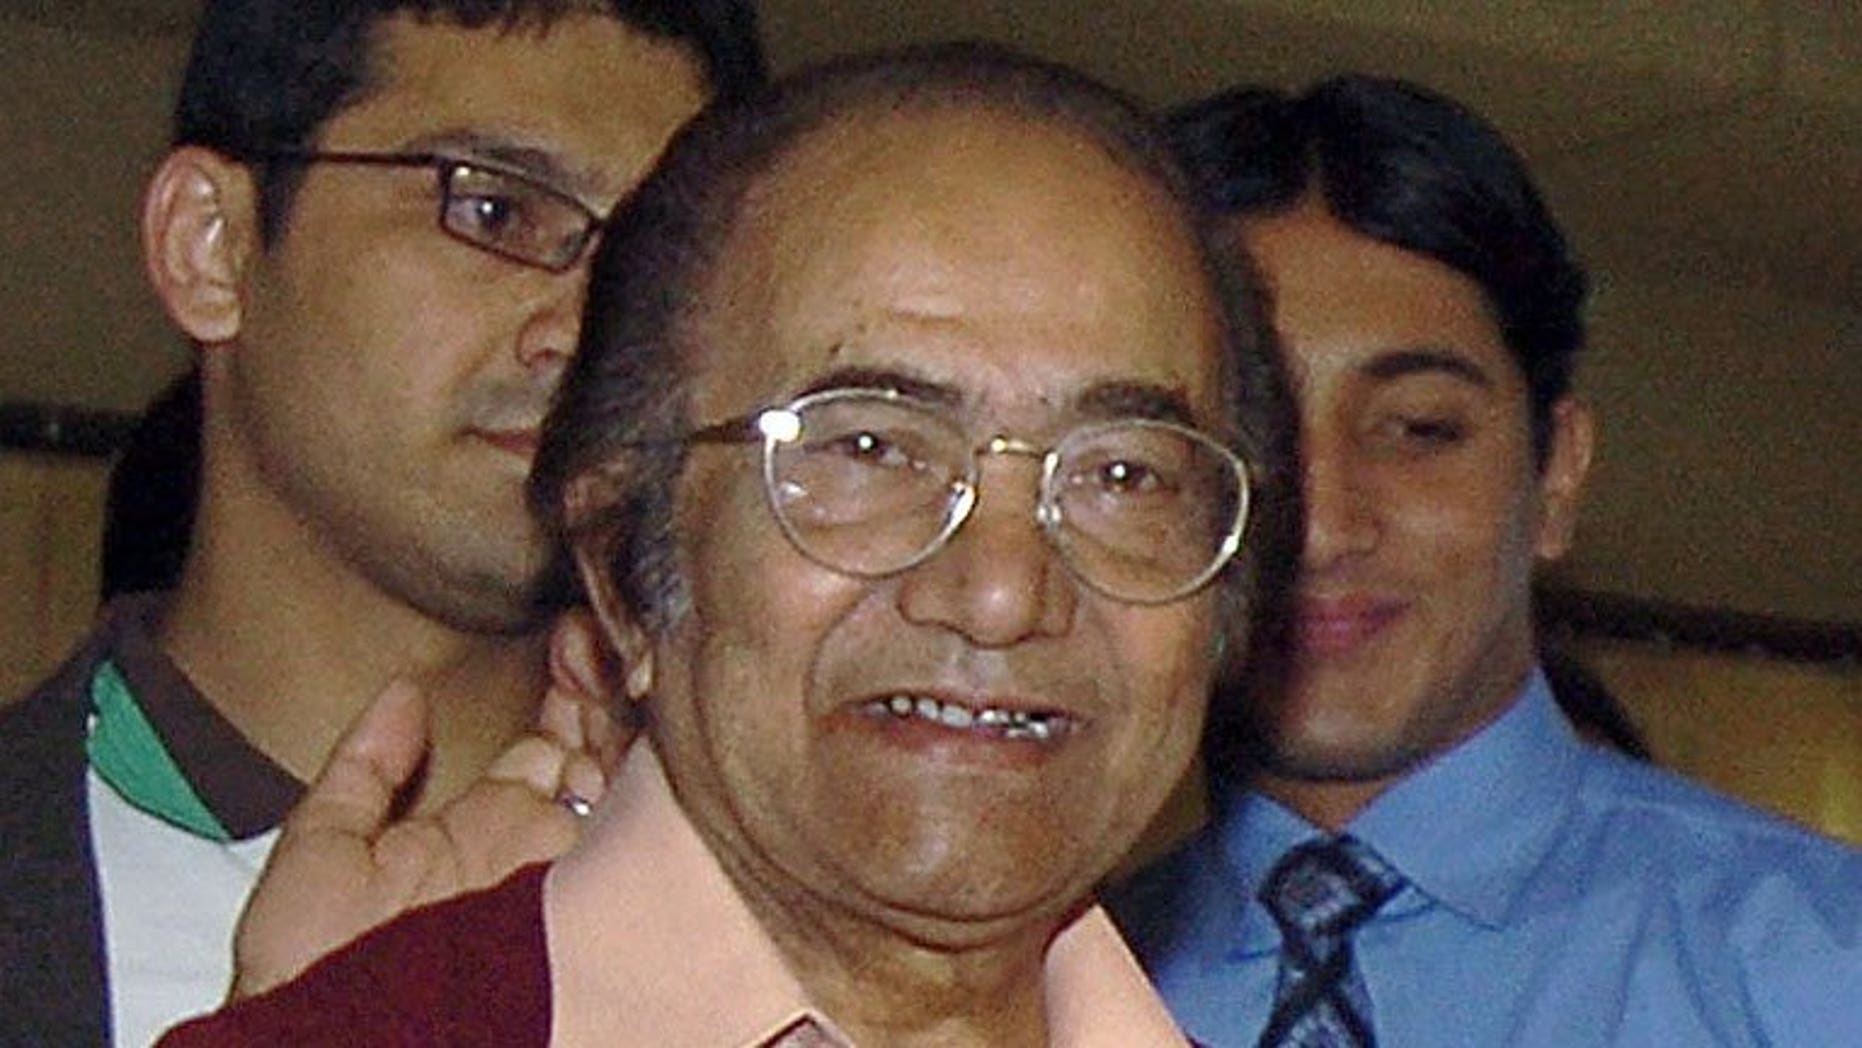 Former Pakistan cricket captain Hanif Mohammad, pictured in Karachi on January 27, 2006, has had an operation for liver cancer, a family friend told AFP.